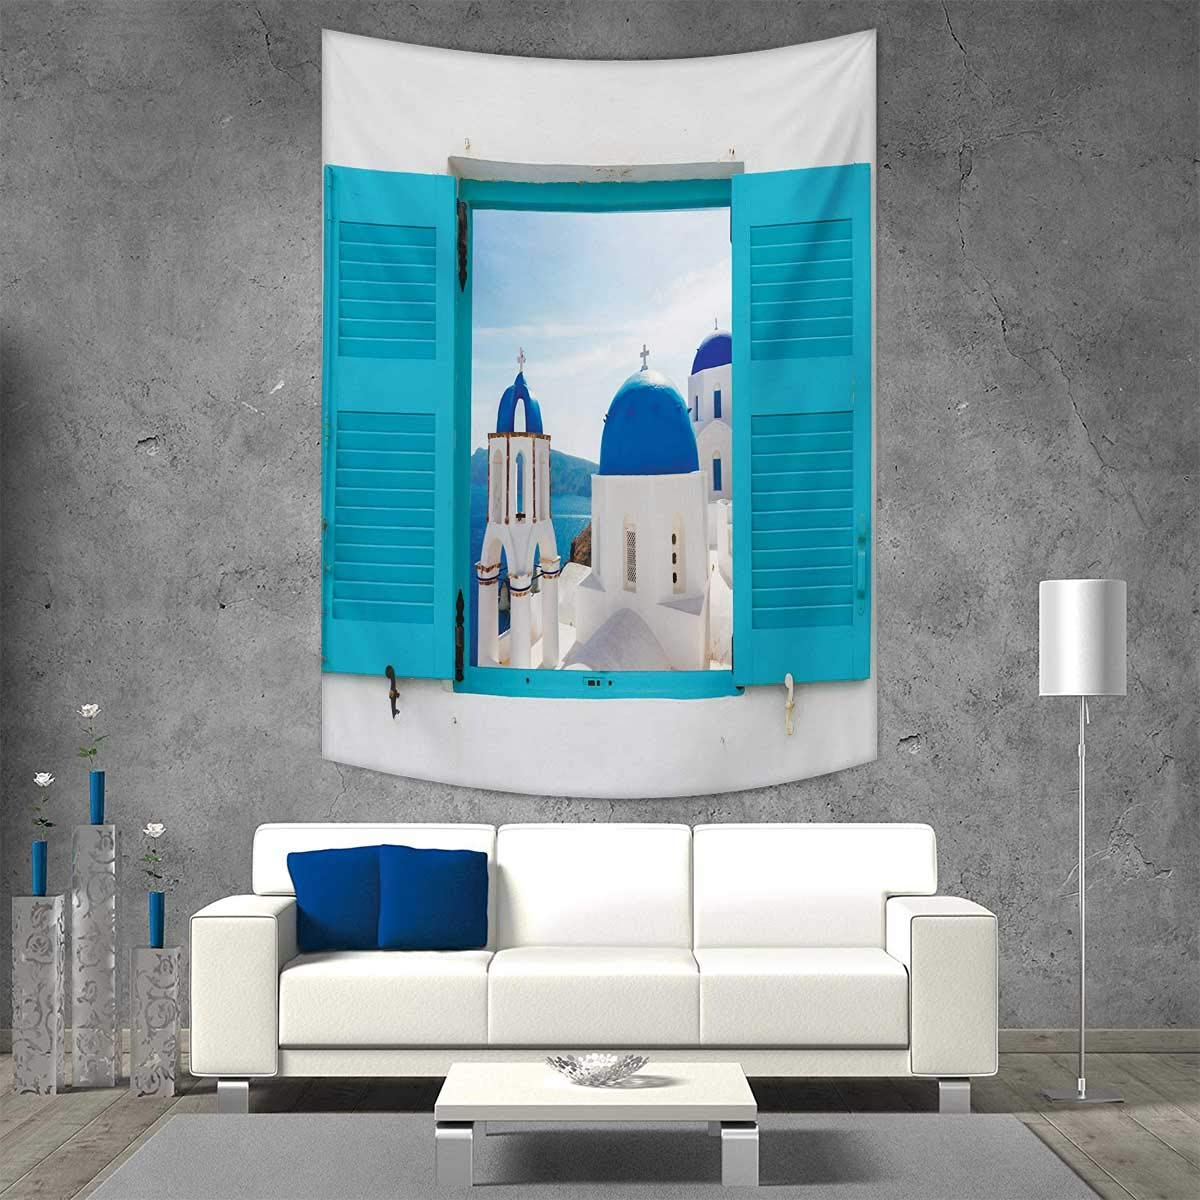 smallbeefly Landscape Vertical Version Tapestry Window with View of Classical Building with Blue Domes Oia Santorini Greece Throw, Bed, Tapestry, or Yoga Blanket 54W x 72L INCH Aqua Blue White